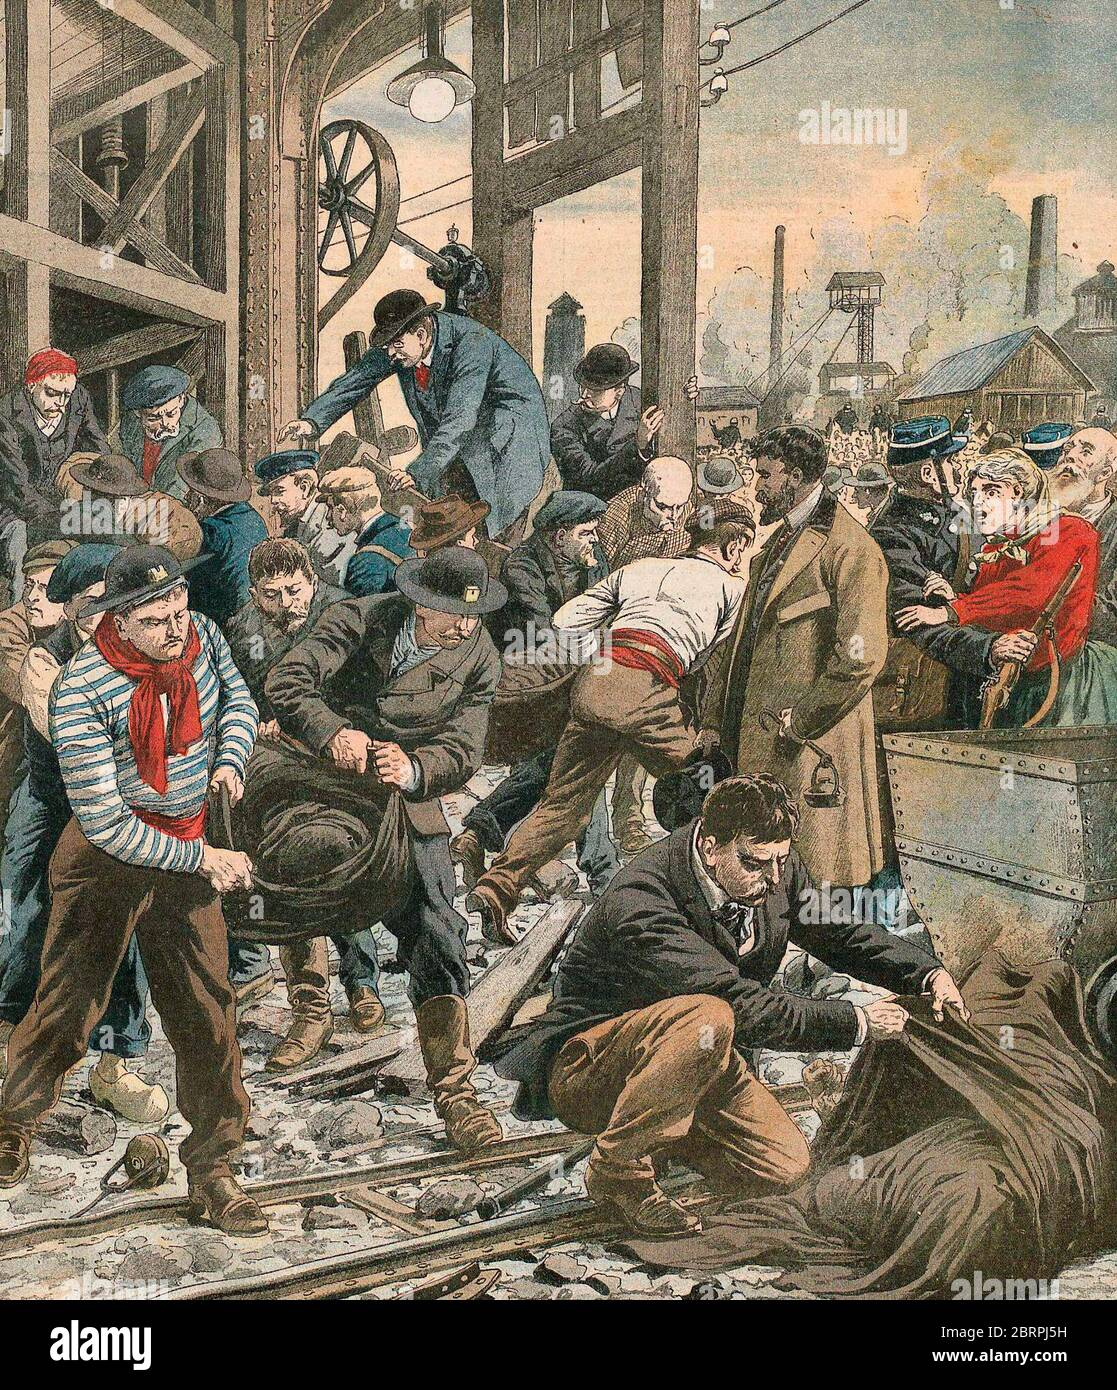 The Courrieres Mine Disaster - Victims Bodies Come to light - Saturday 10 March 1906 Stock Photo